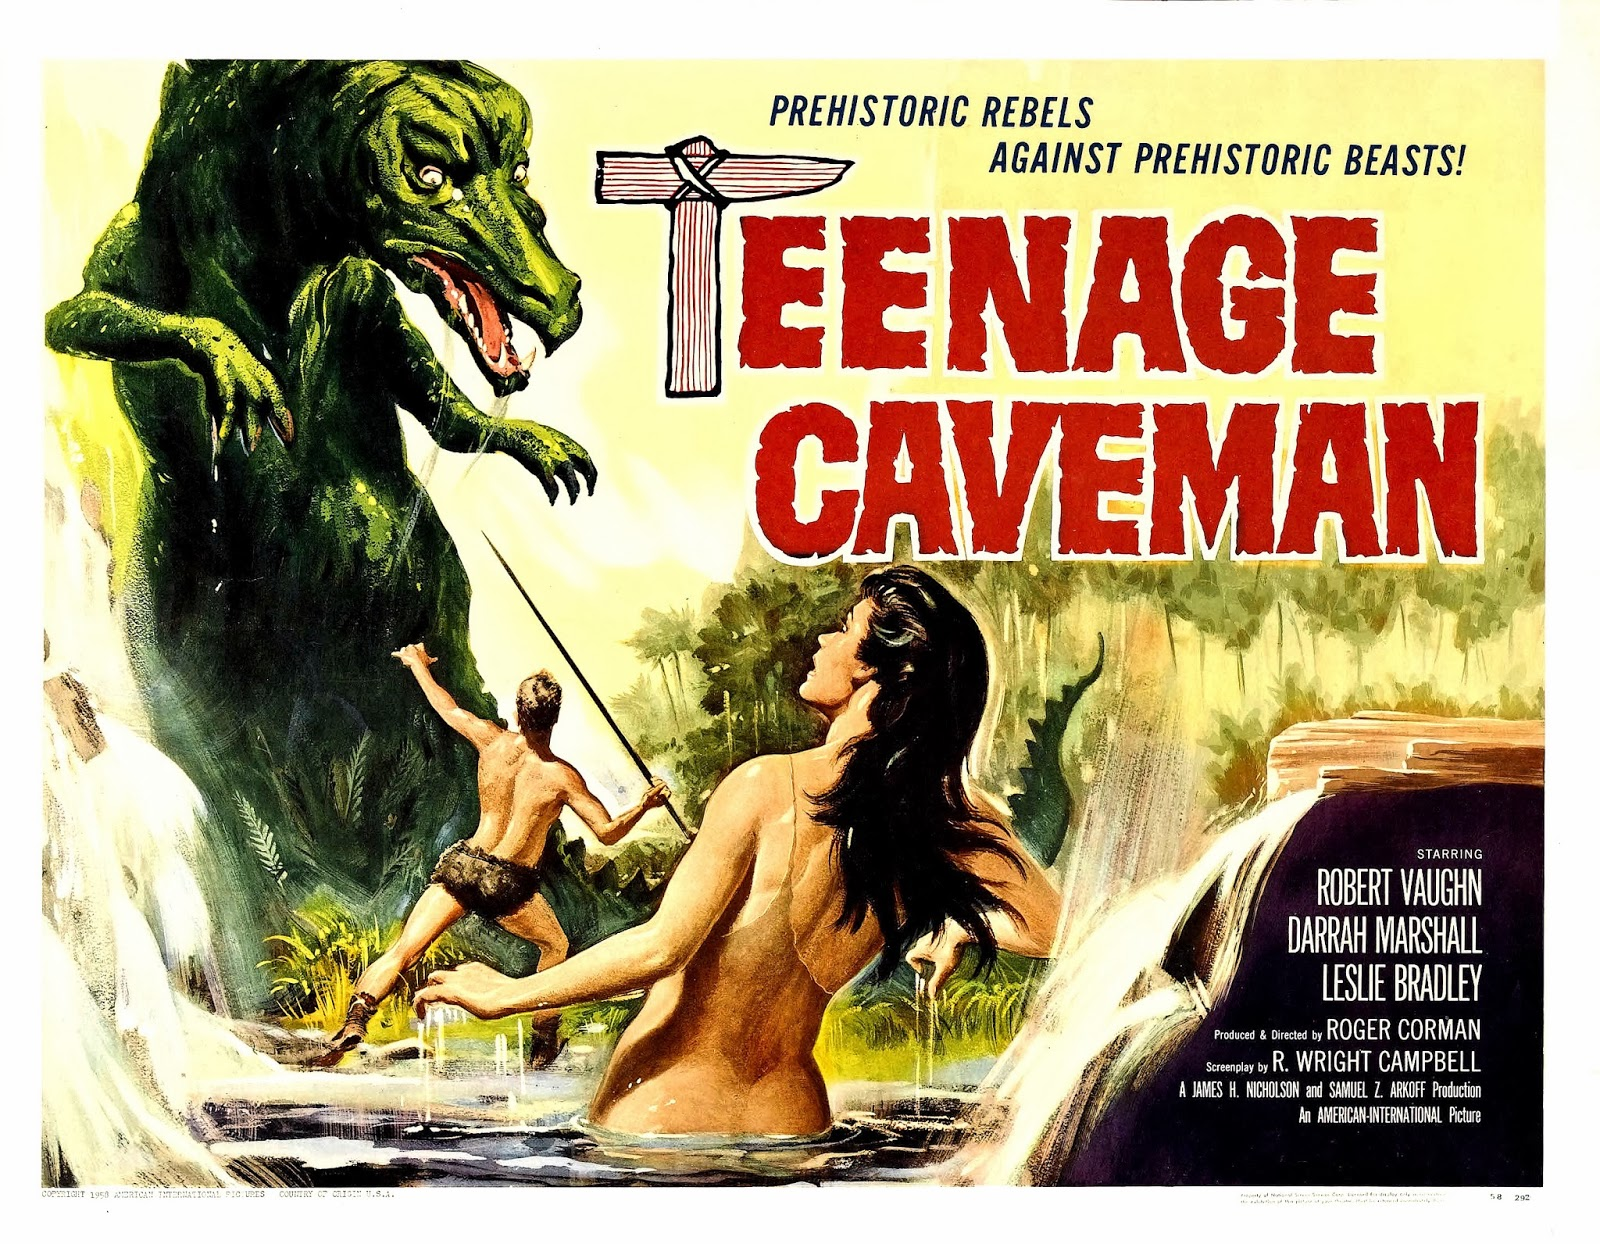 http://wrongsideoftheart.com/2010/01/teenage-caveman-1958-usa/